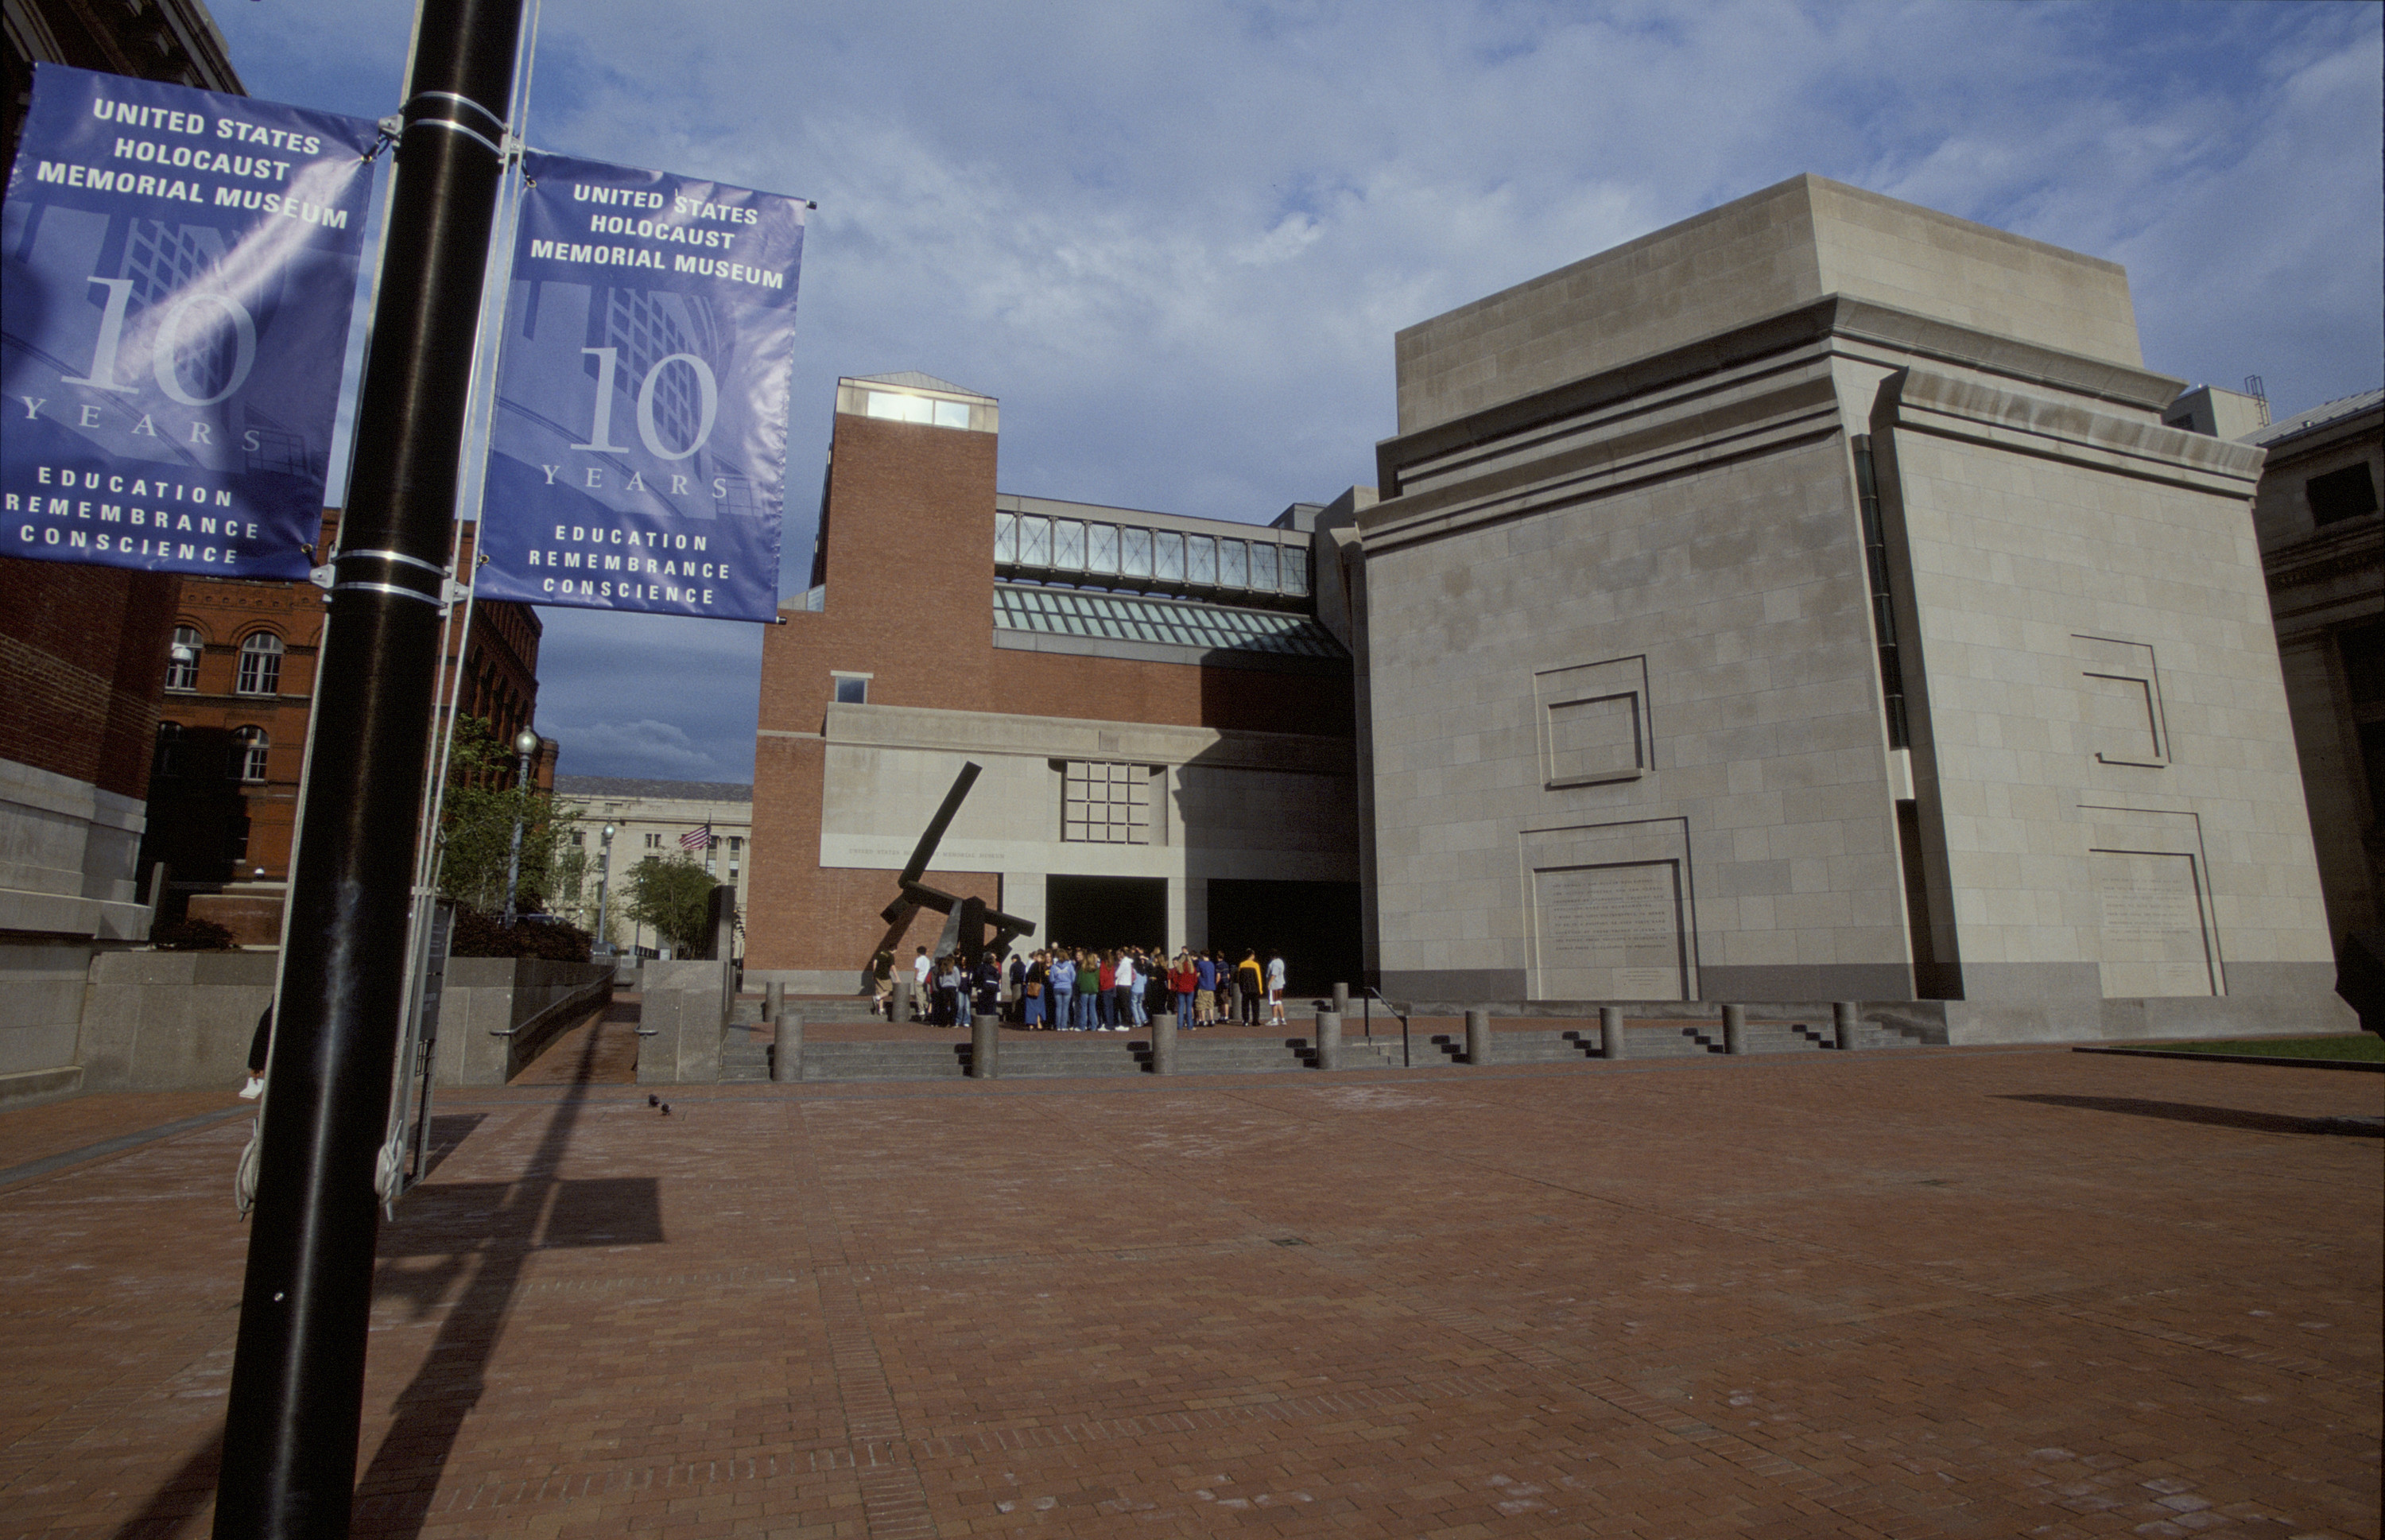 View of Eisenhower Plaza decorated with 10th anniversary banners on the flag pole at the U.S. Holocaust Memorial Museum on the day of its10th anniversary.